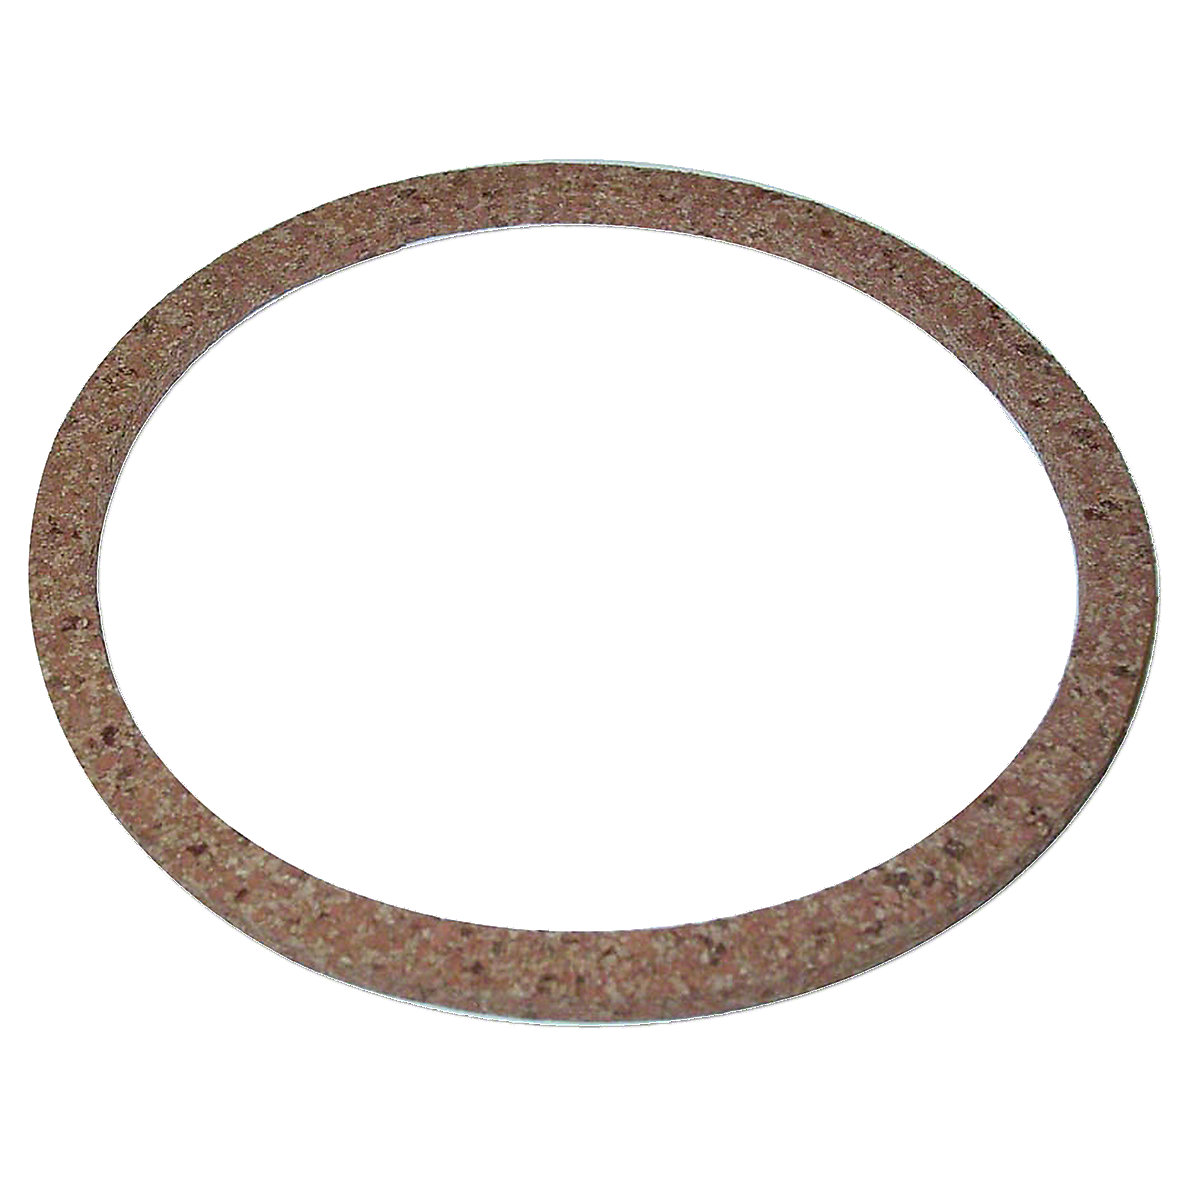 Tractor Air Cleaner Gasket : Fds air cleaner gasket